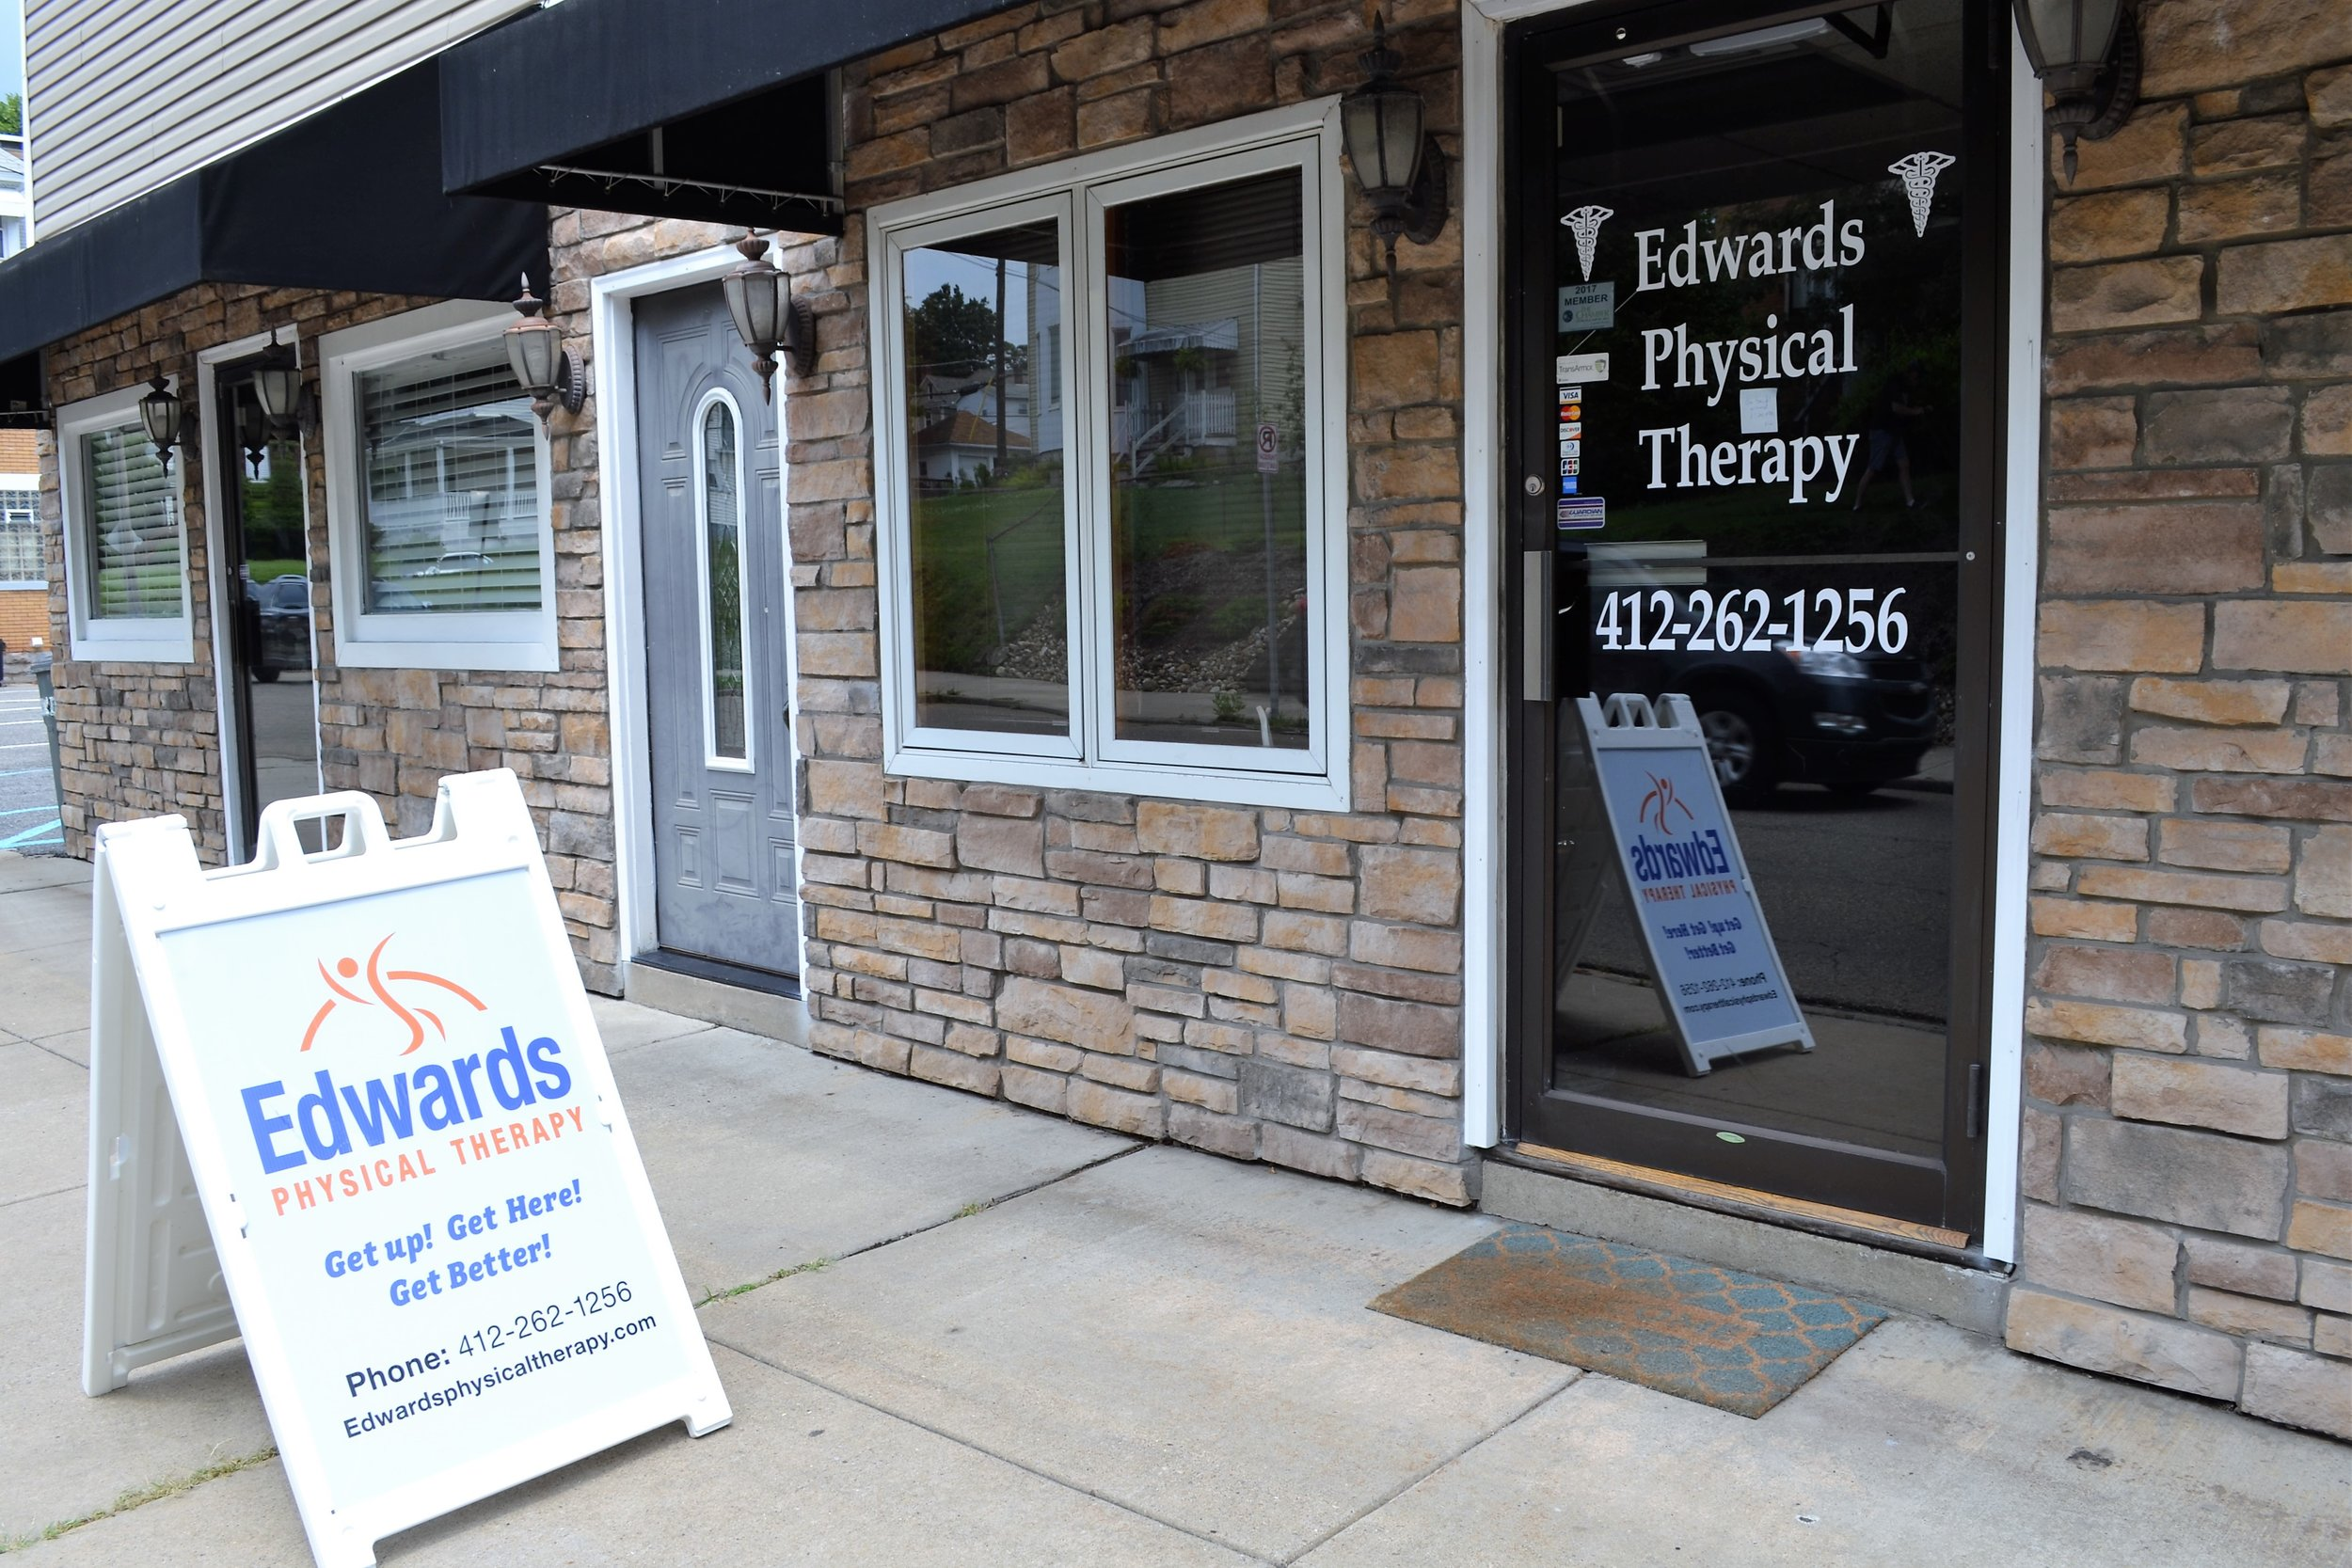 Edwards Physical Therapy - 1541 State Ave,(412) 262-1256